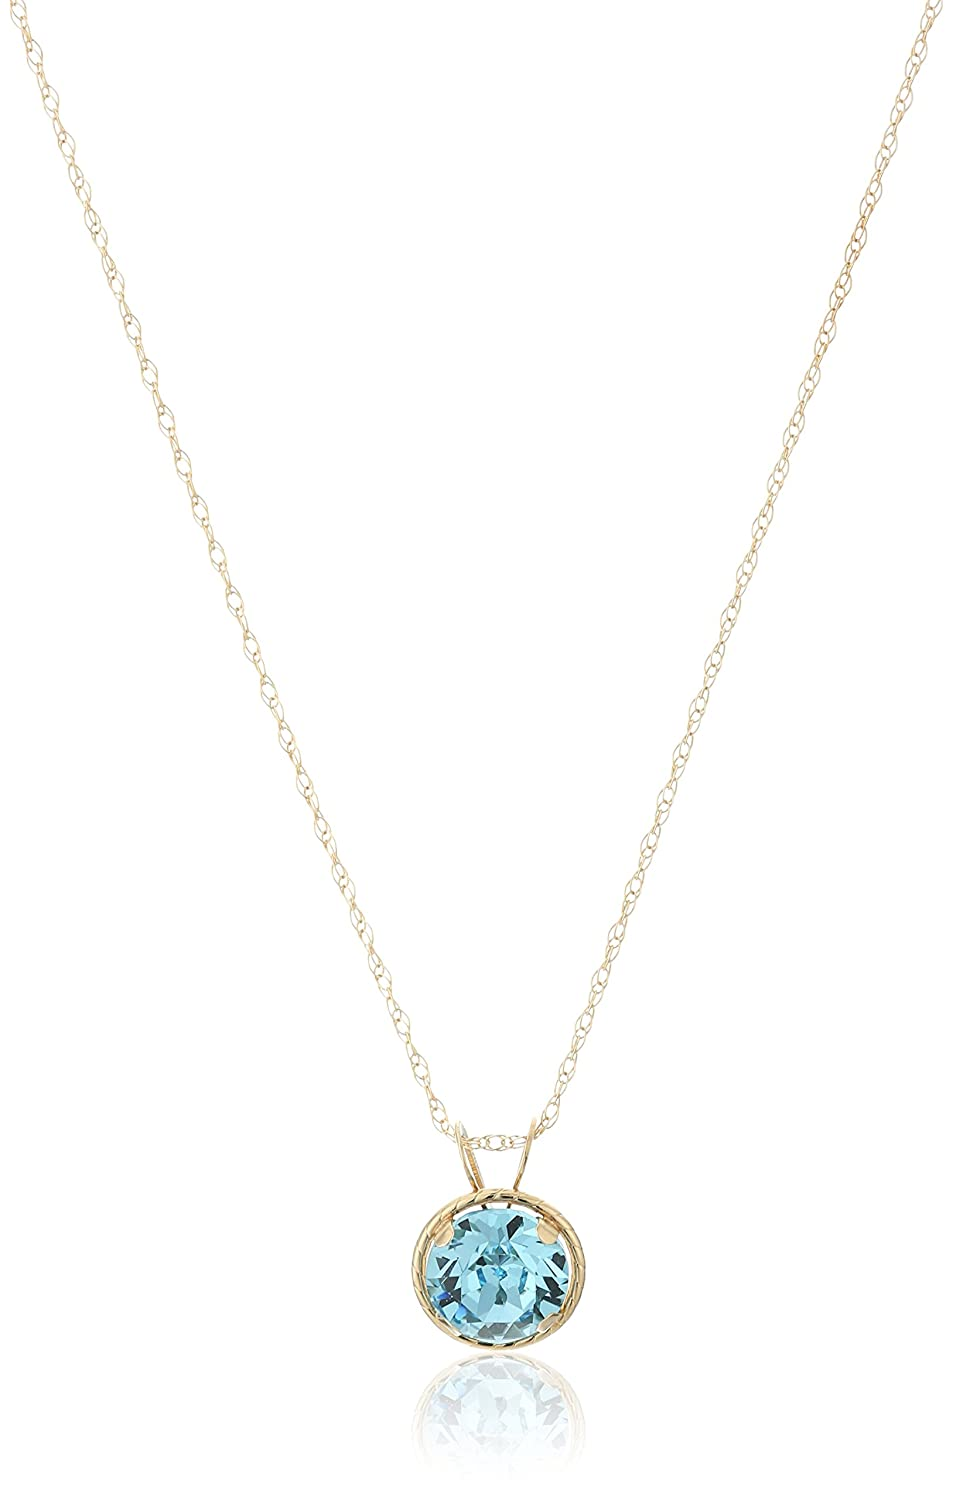 10k Yellow Gold Round Swarovski Crystal Birth Stone Pendant Necklace, 18 18 Amazon Collection 602732/10Y/YY/ASCY/STD